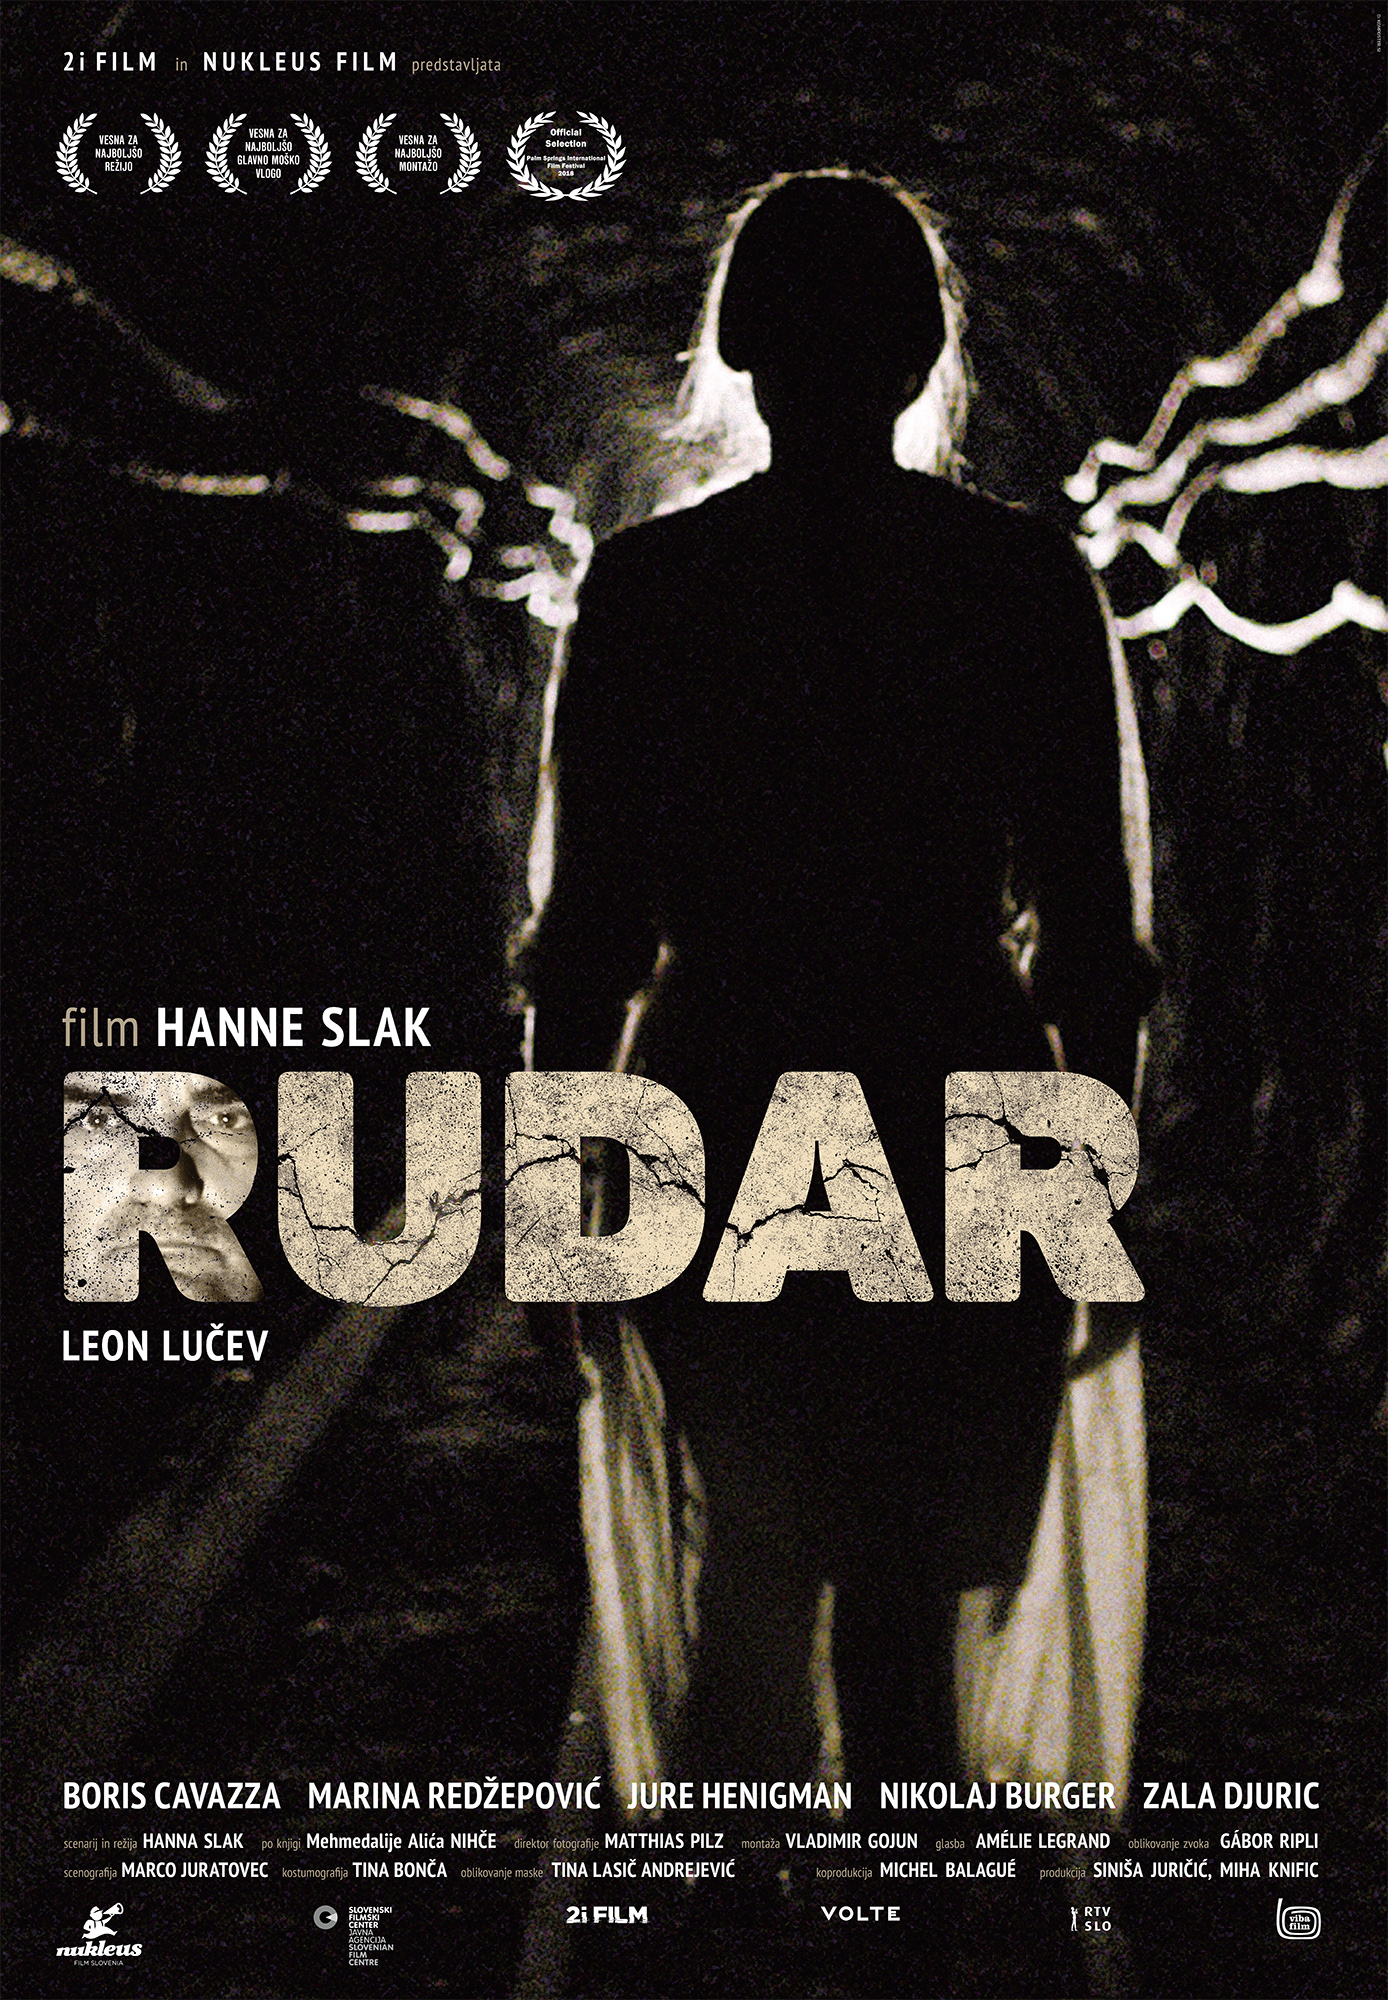 Poster of the film